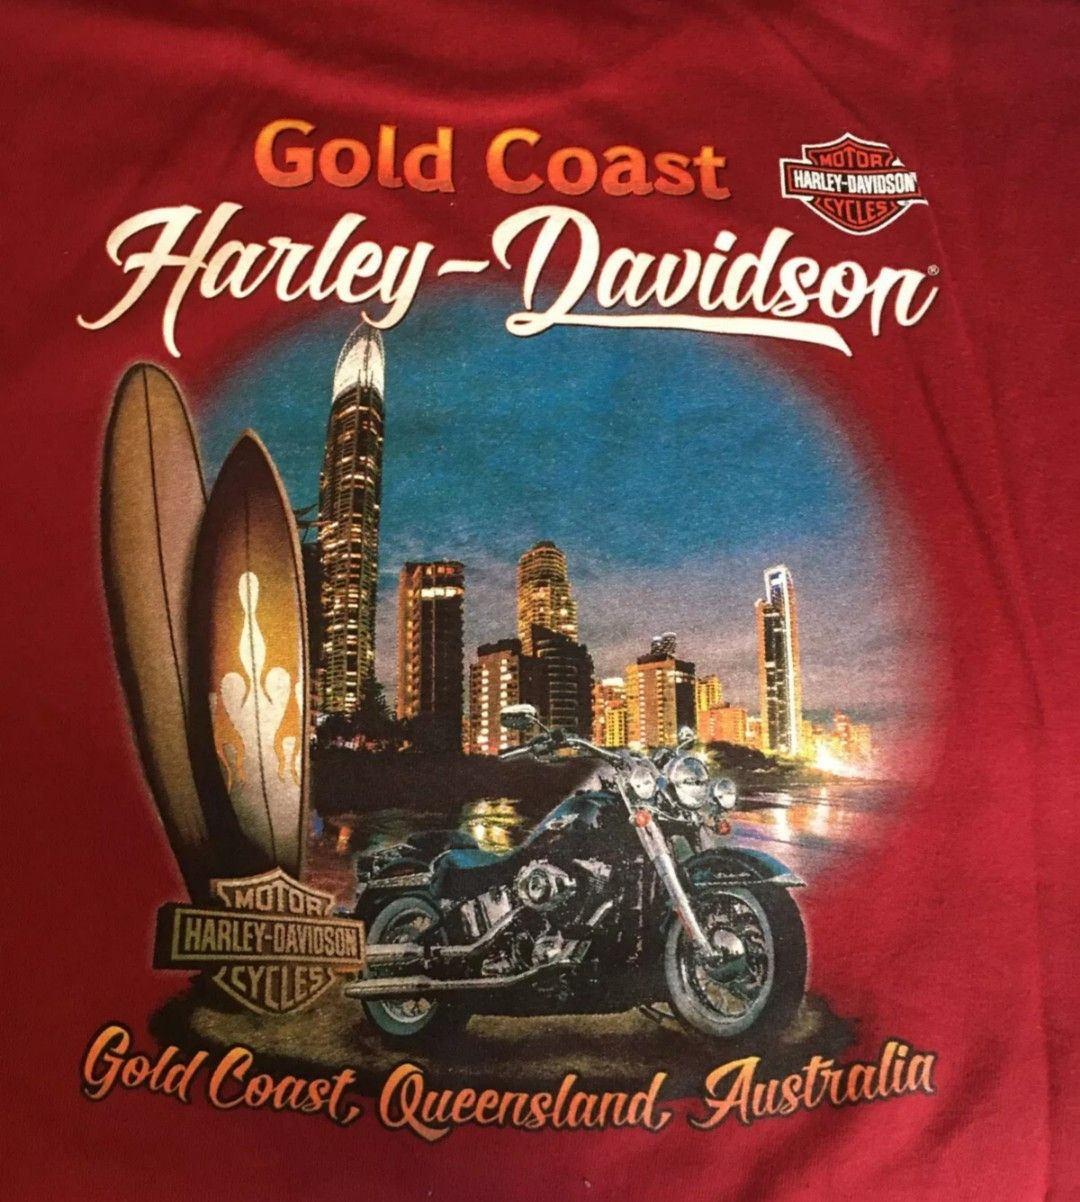 Pin by Ian Snape on Harley Davidson dealers in 2020